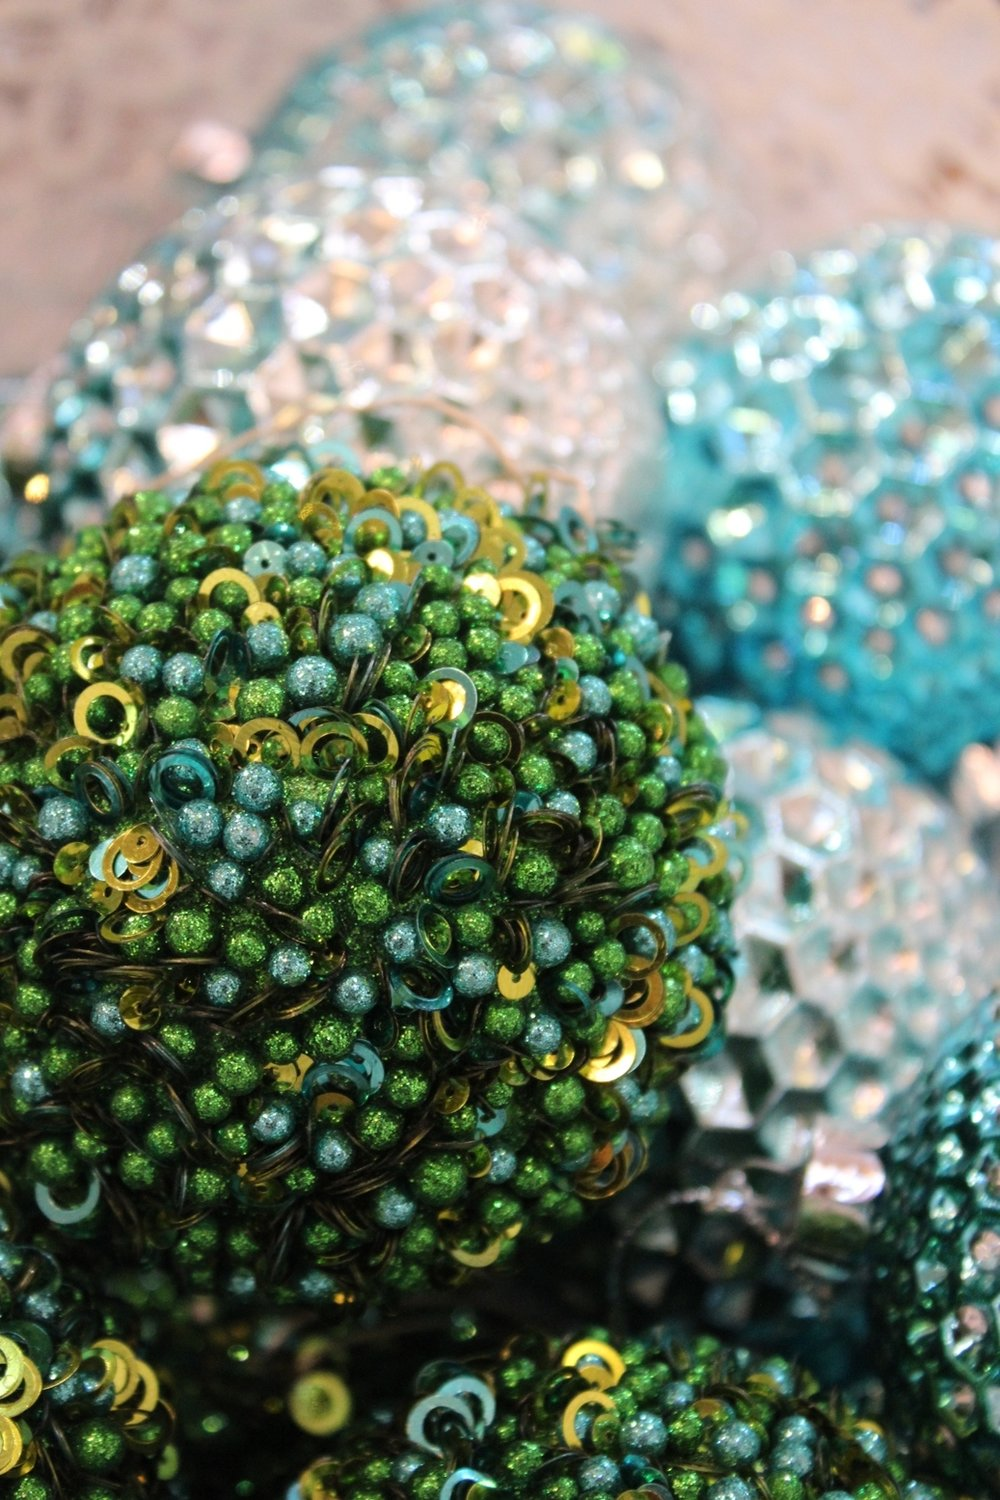 Emerald Green Bauble - €4.90